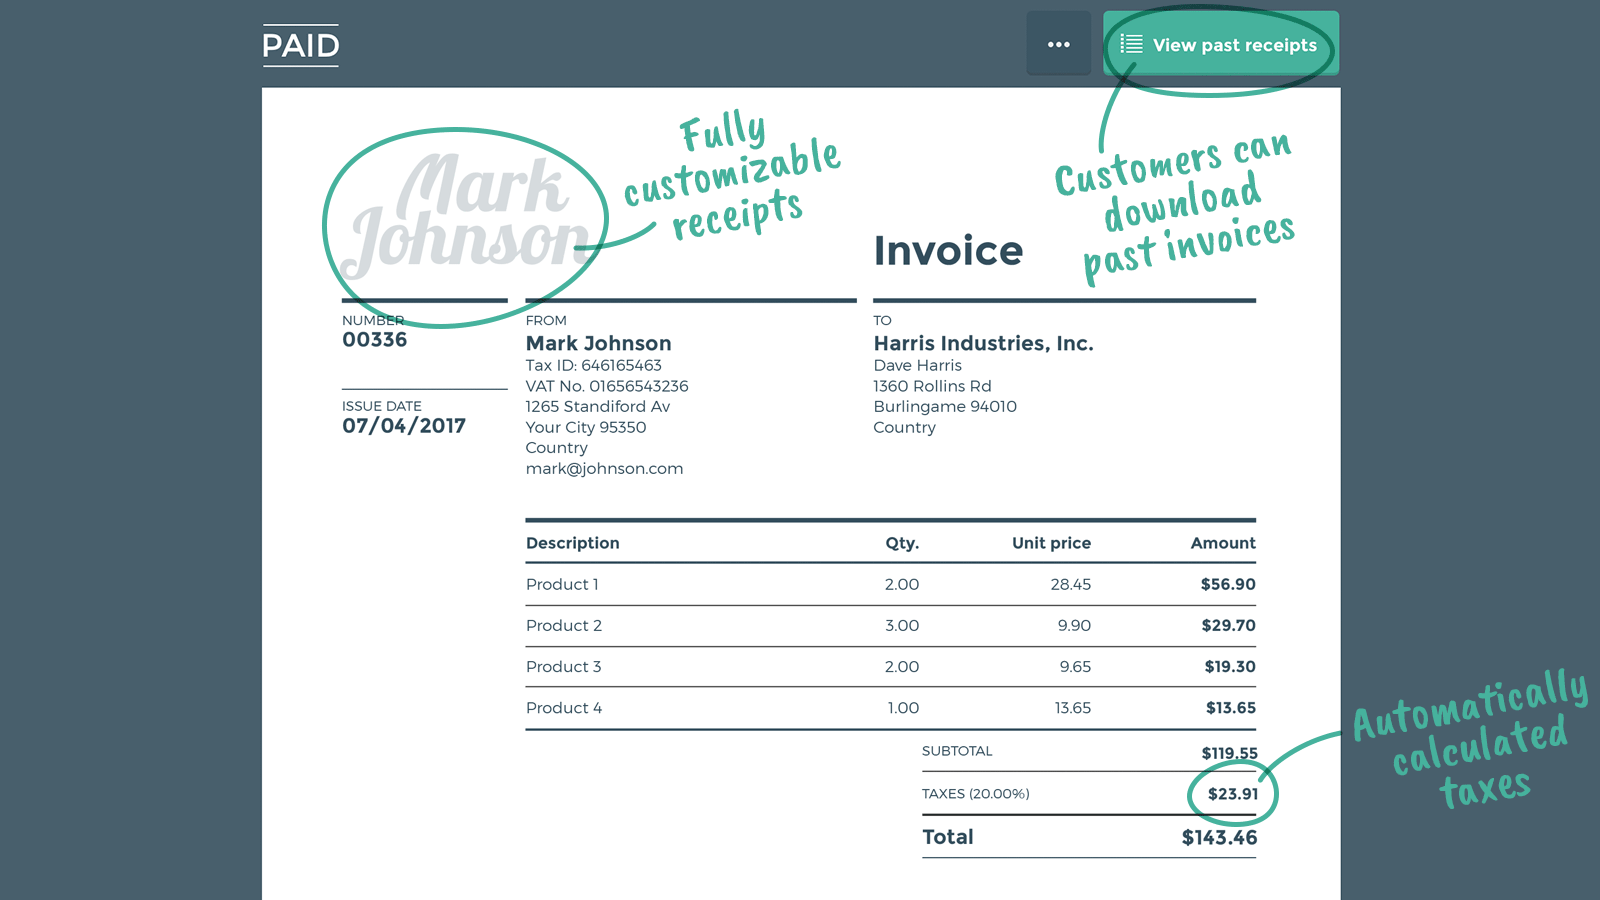 Fully customized receipts including tax information